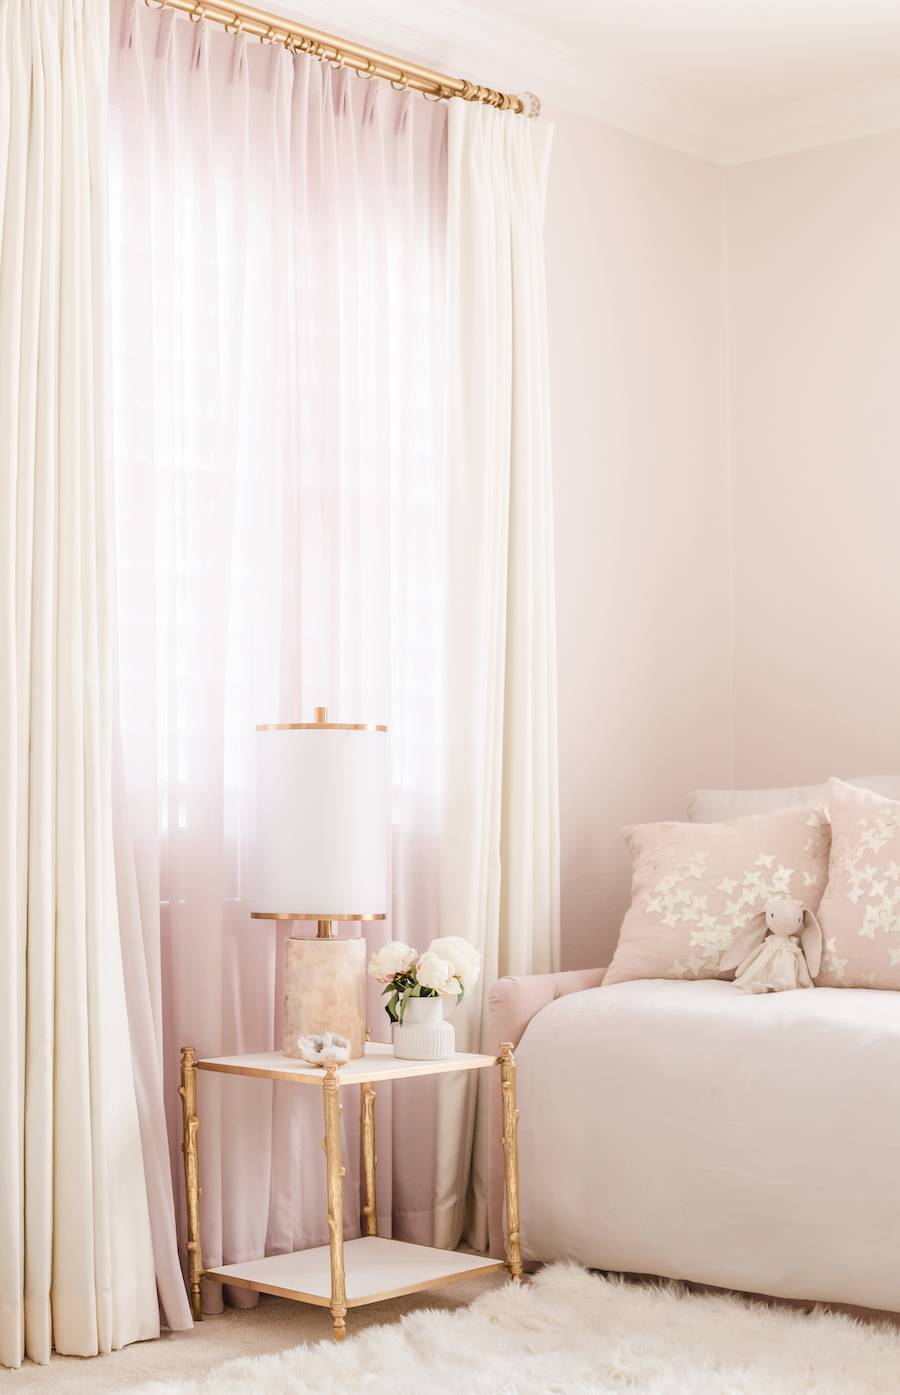 Custom Blackout Curtains and Daybed in Mauve Nursery